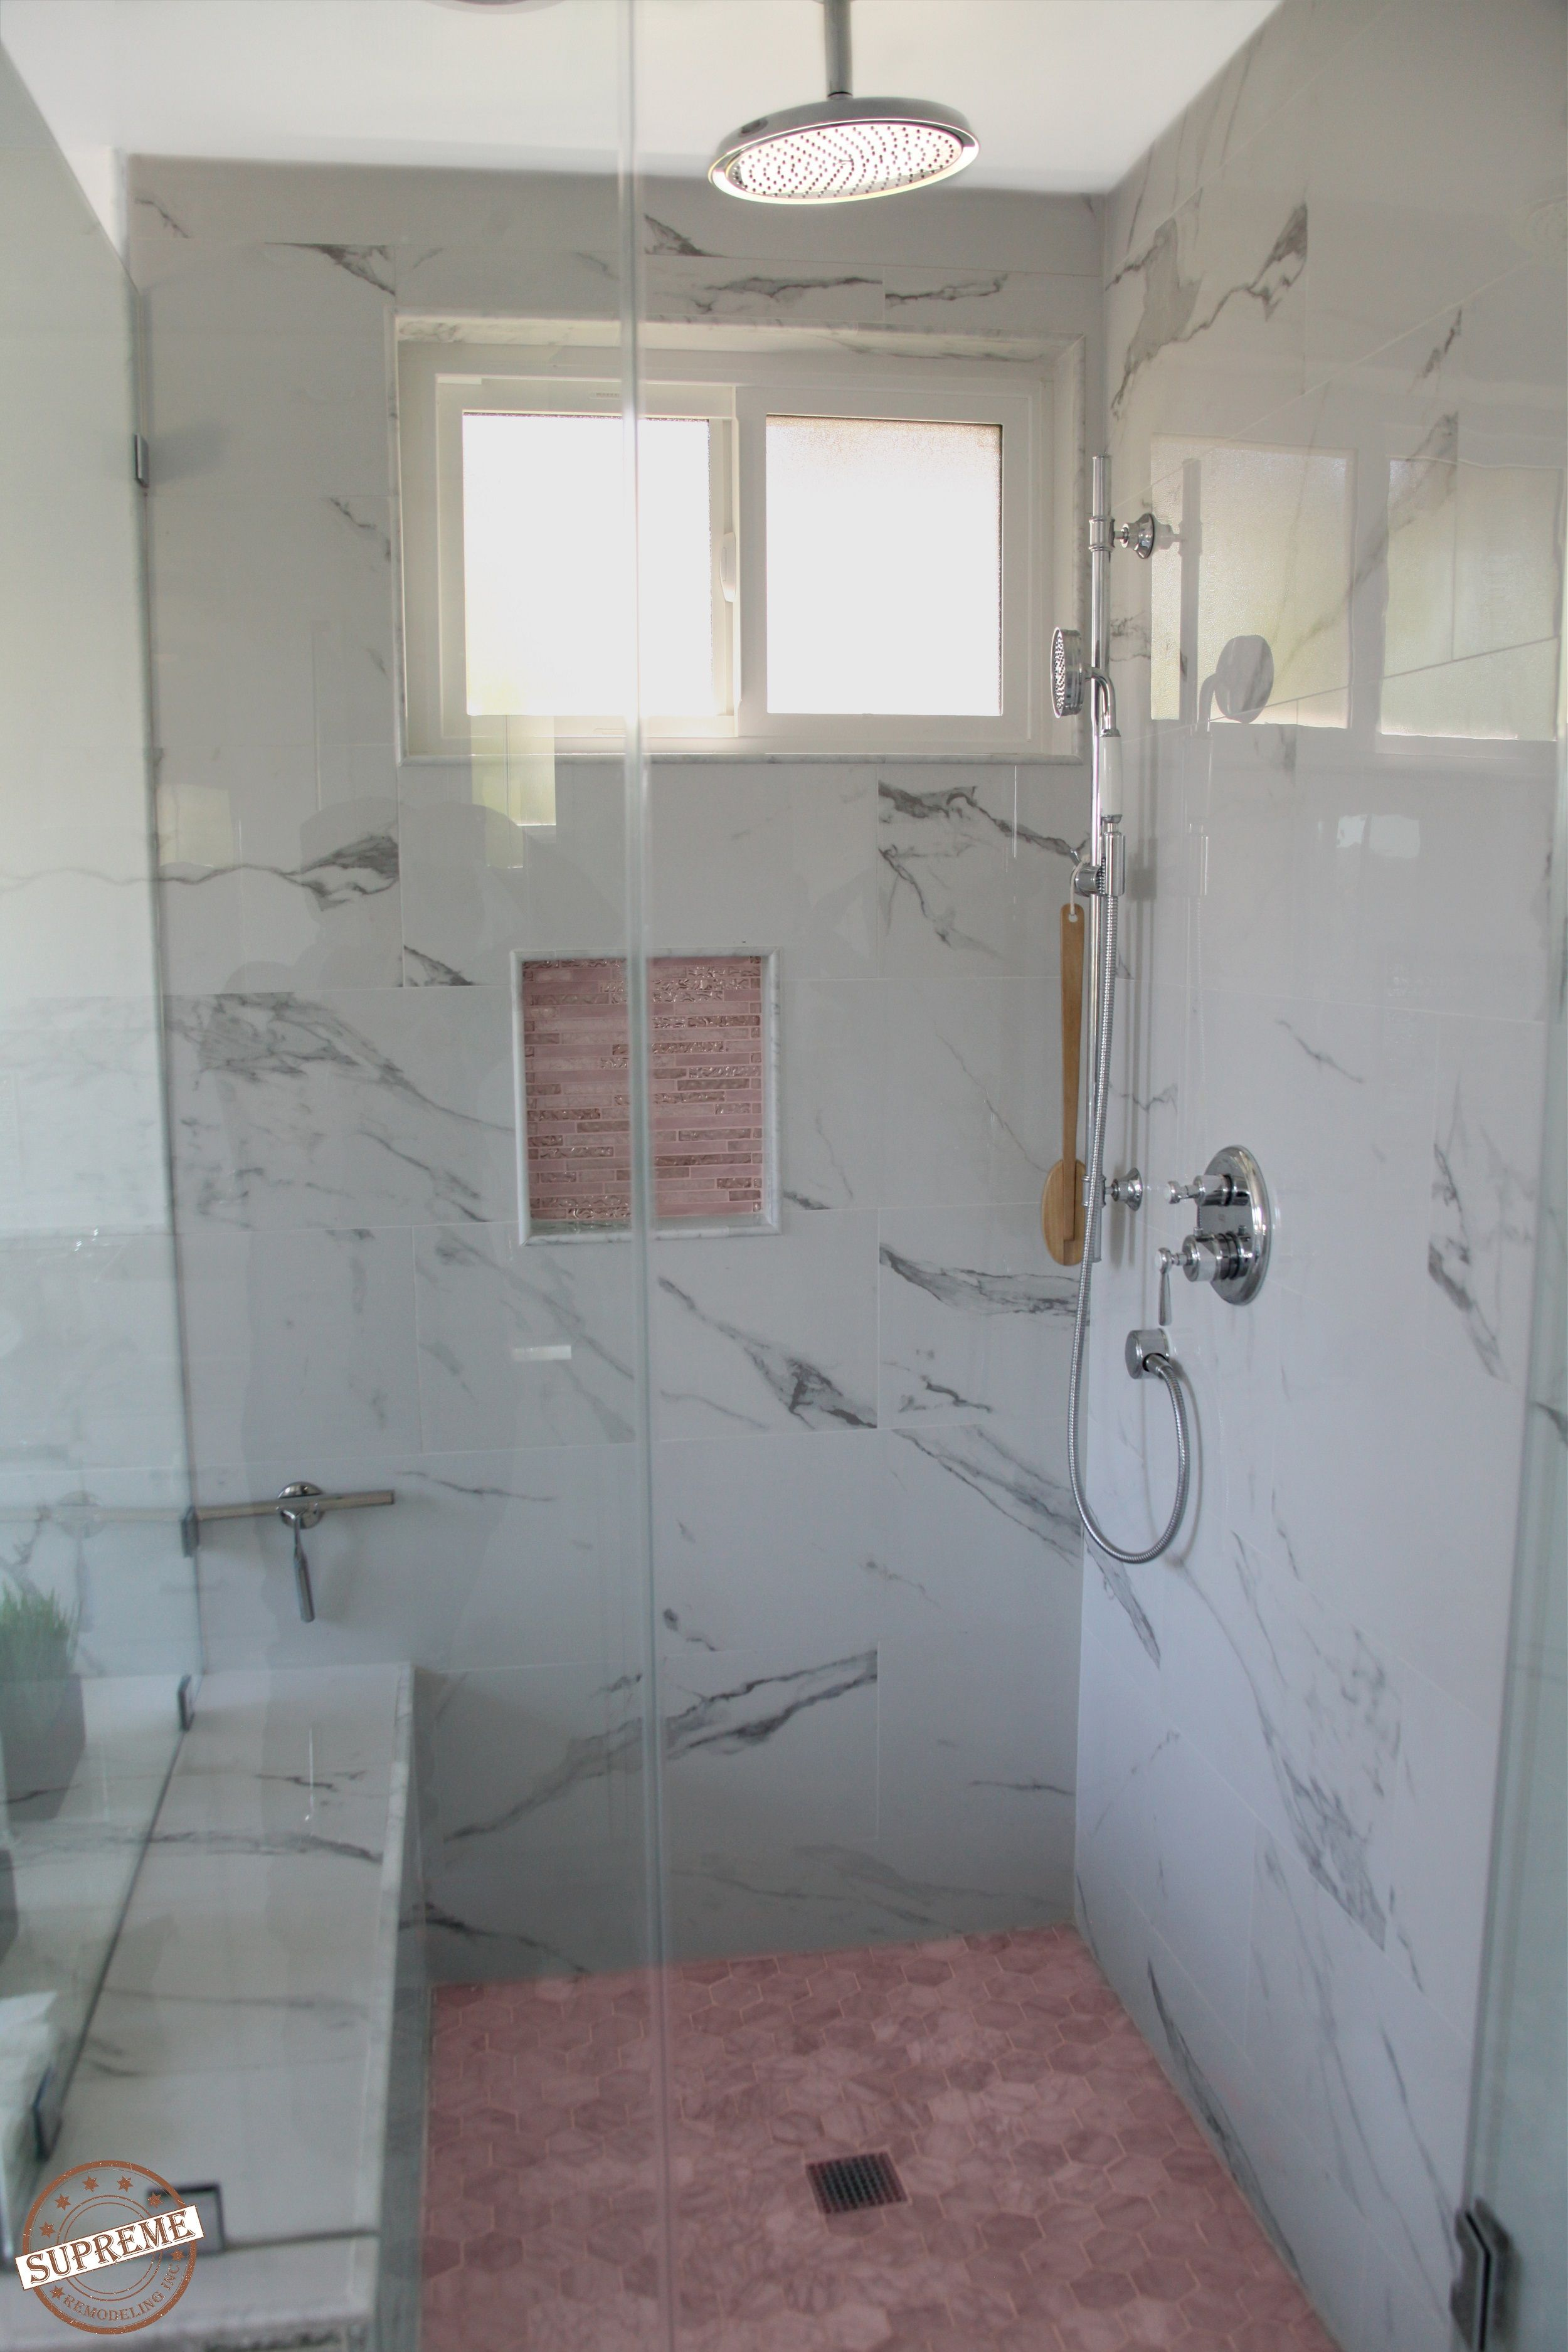 Cultured Marble Is An Elegant Material Choice For A New Shower